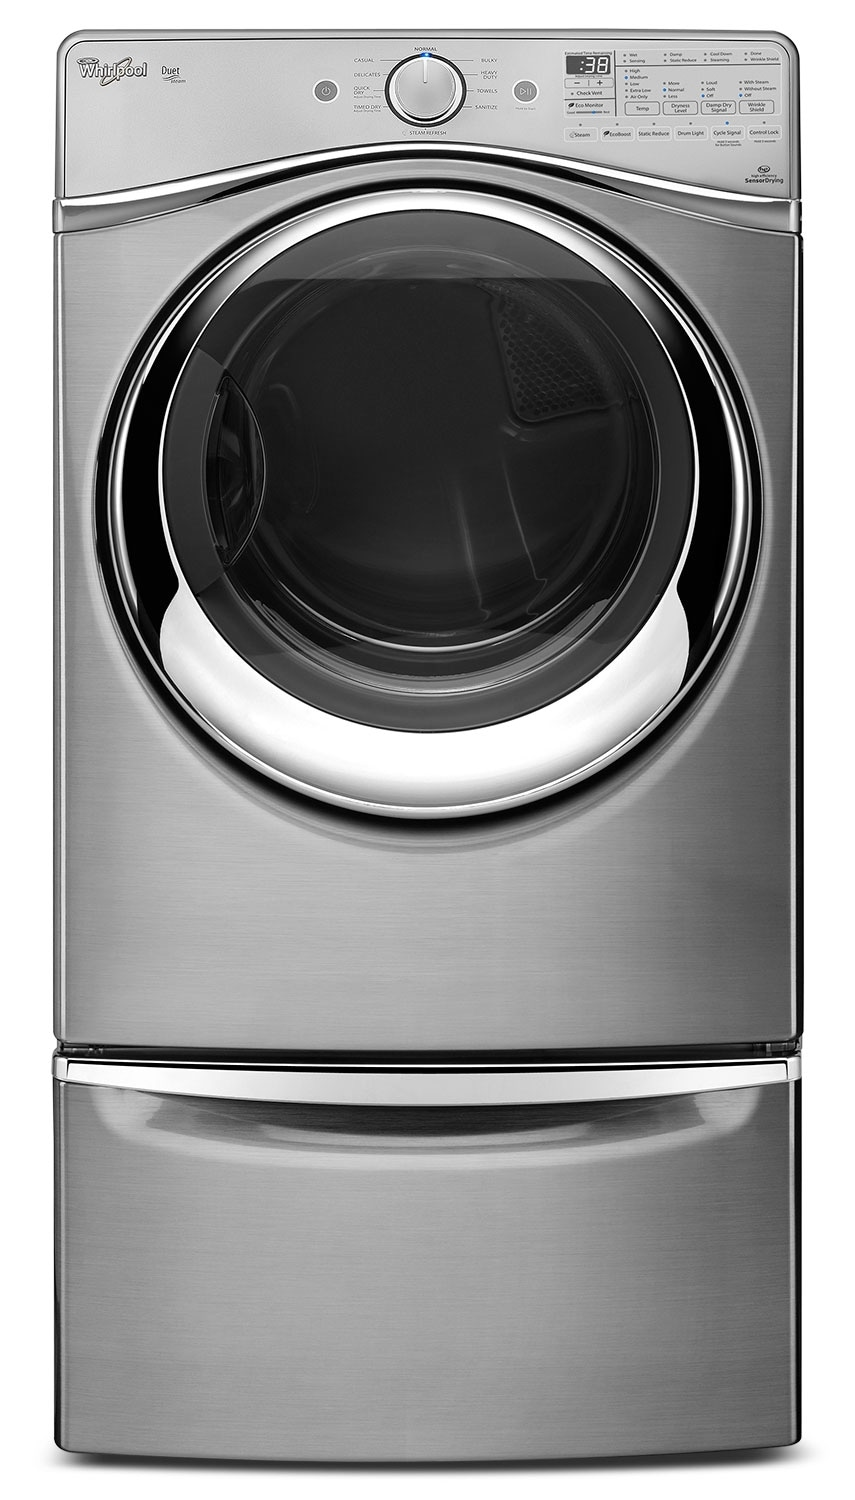 Washers and Dryers - Whirlpool 7.3 Cu. Ft. Duet® High-Efficiency Gas Dryer - Diamond Steel